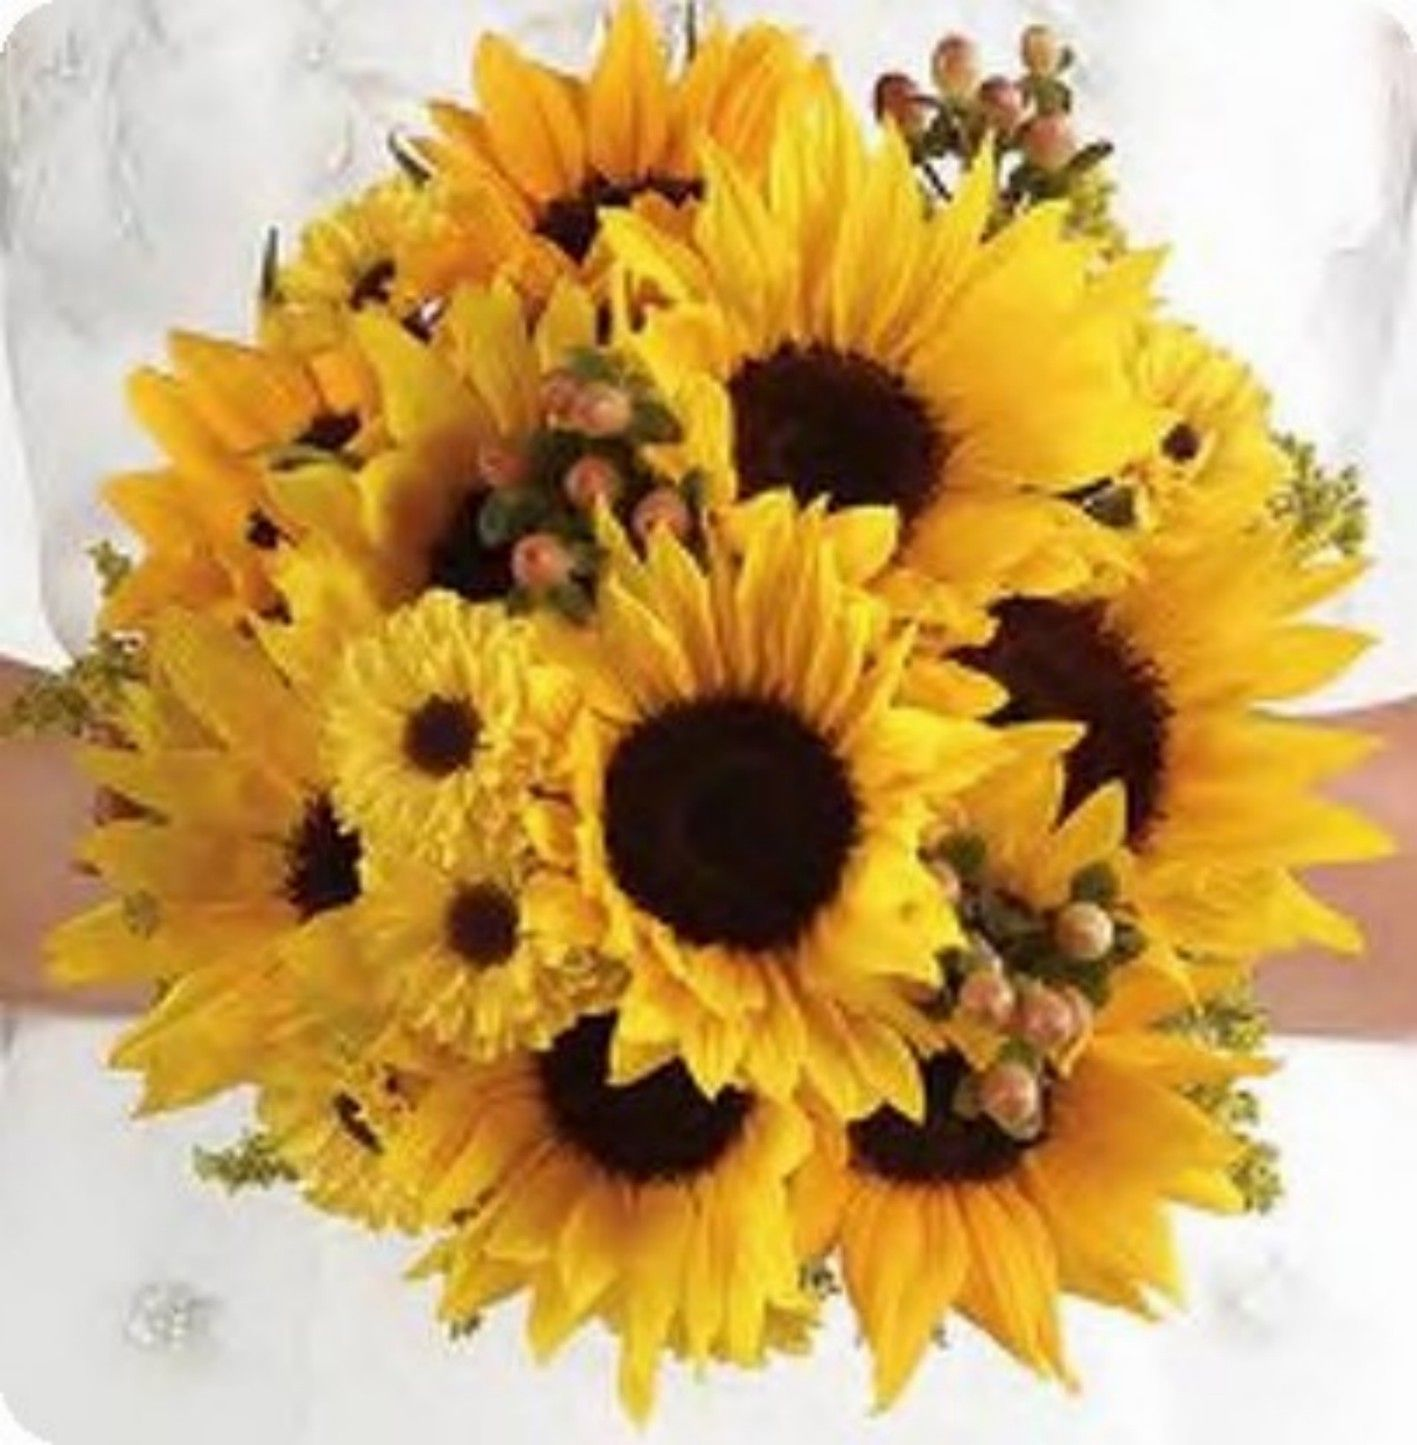 Wedding bouquets of sunflowers  Sunflowers  something like this for me but with gerbera daisies